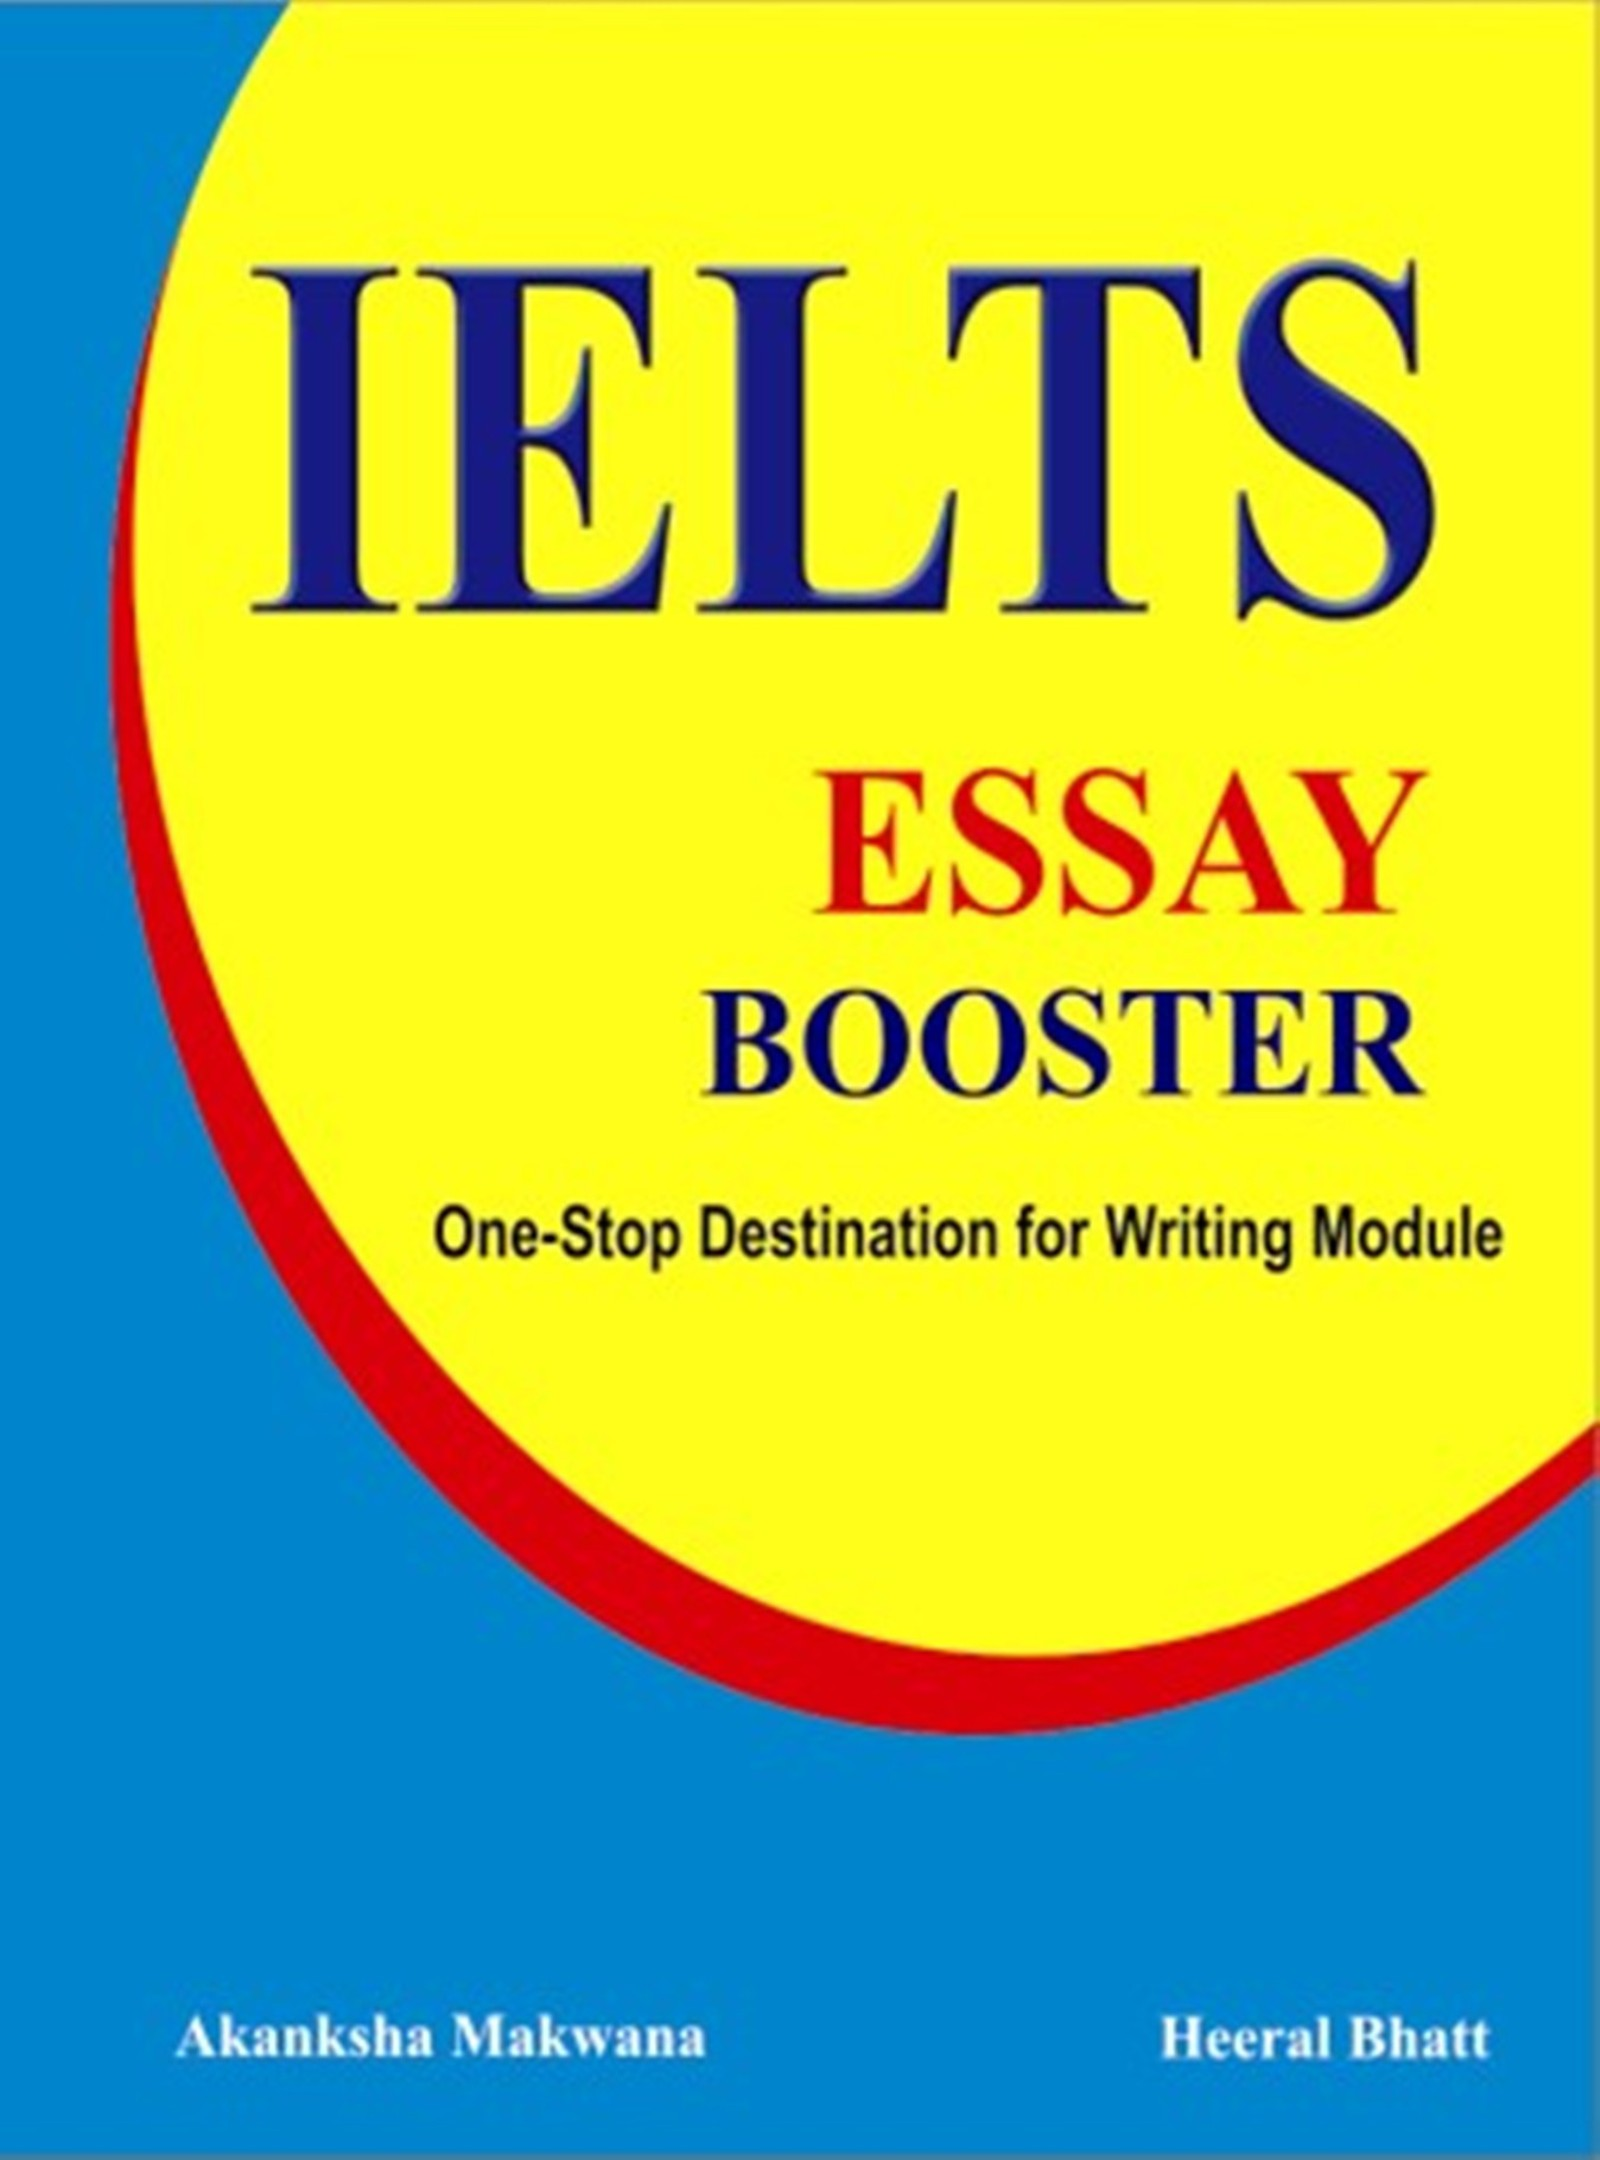 ielts essay booster one stop destination for the ielts essay booster one stop destination for the writing module